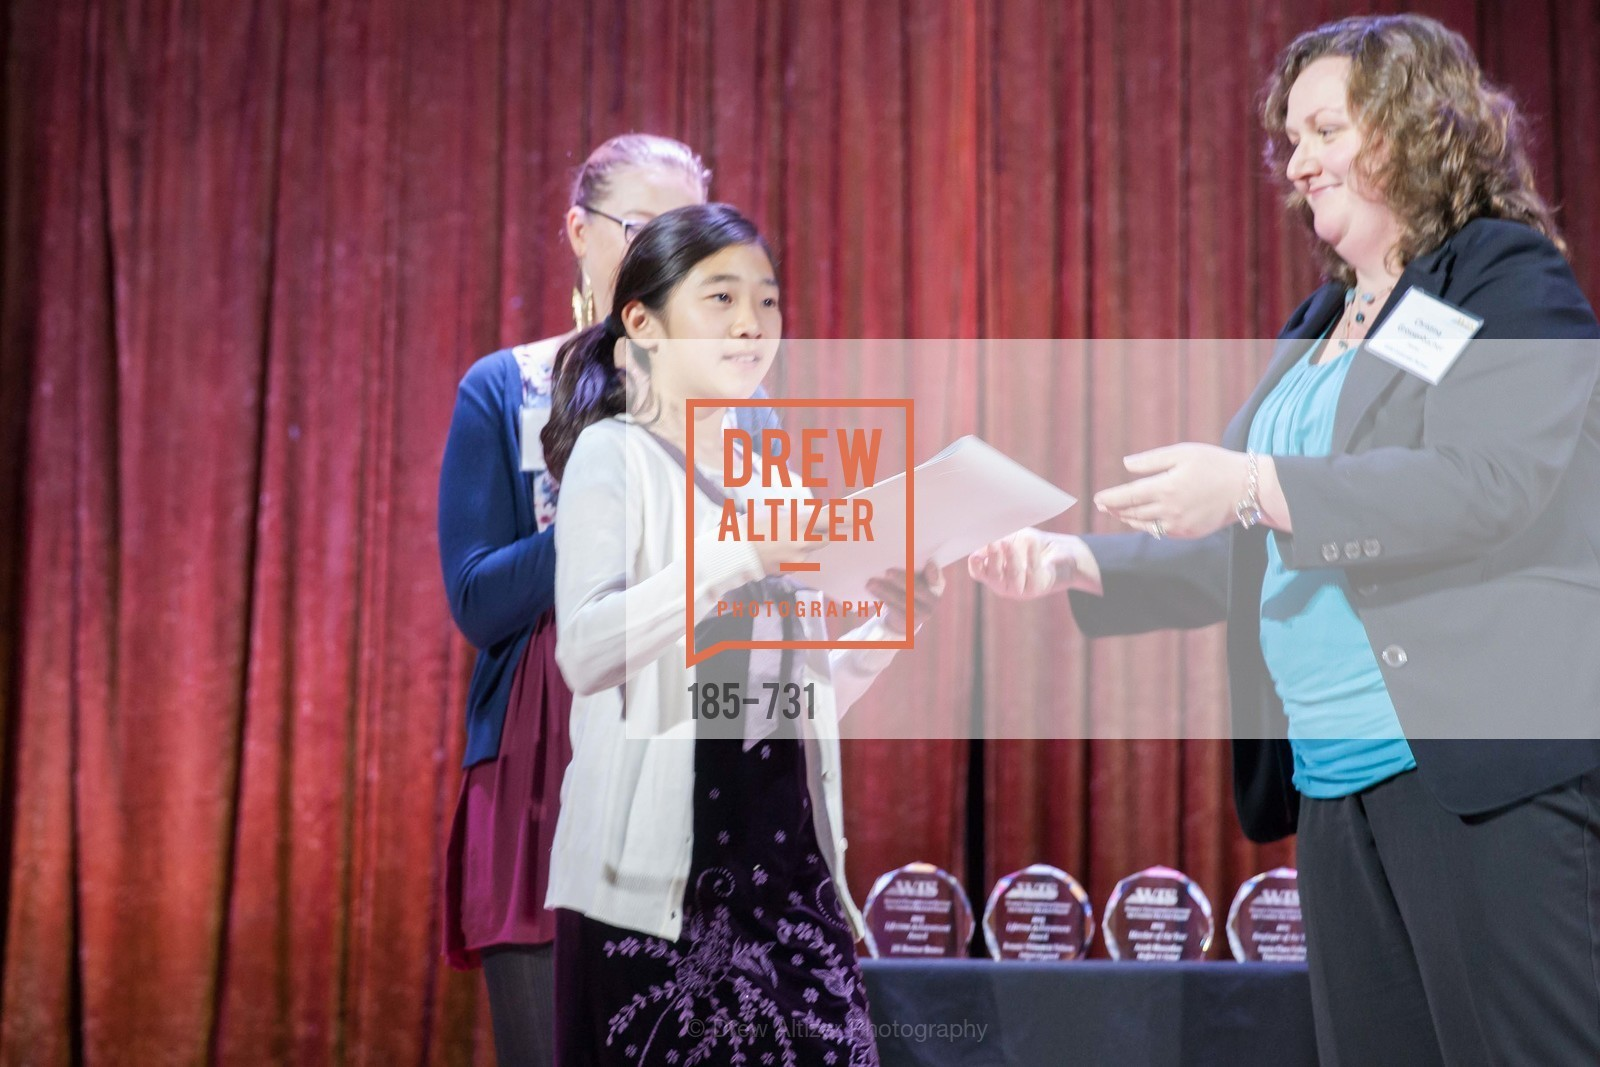 Audrey Choi, Christina Grossenbacher, WOMEN'S TRANSPORTATION SEMINAR SF Bay Area Chapter Annual Scholarship Awards, US, May 14th, 2015,Drew Altizer, Drew Altizer Photography, full-service agency, private events, San Francisco photographer, photographer california